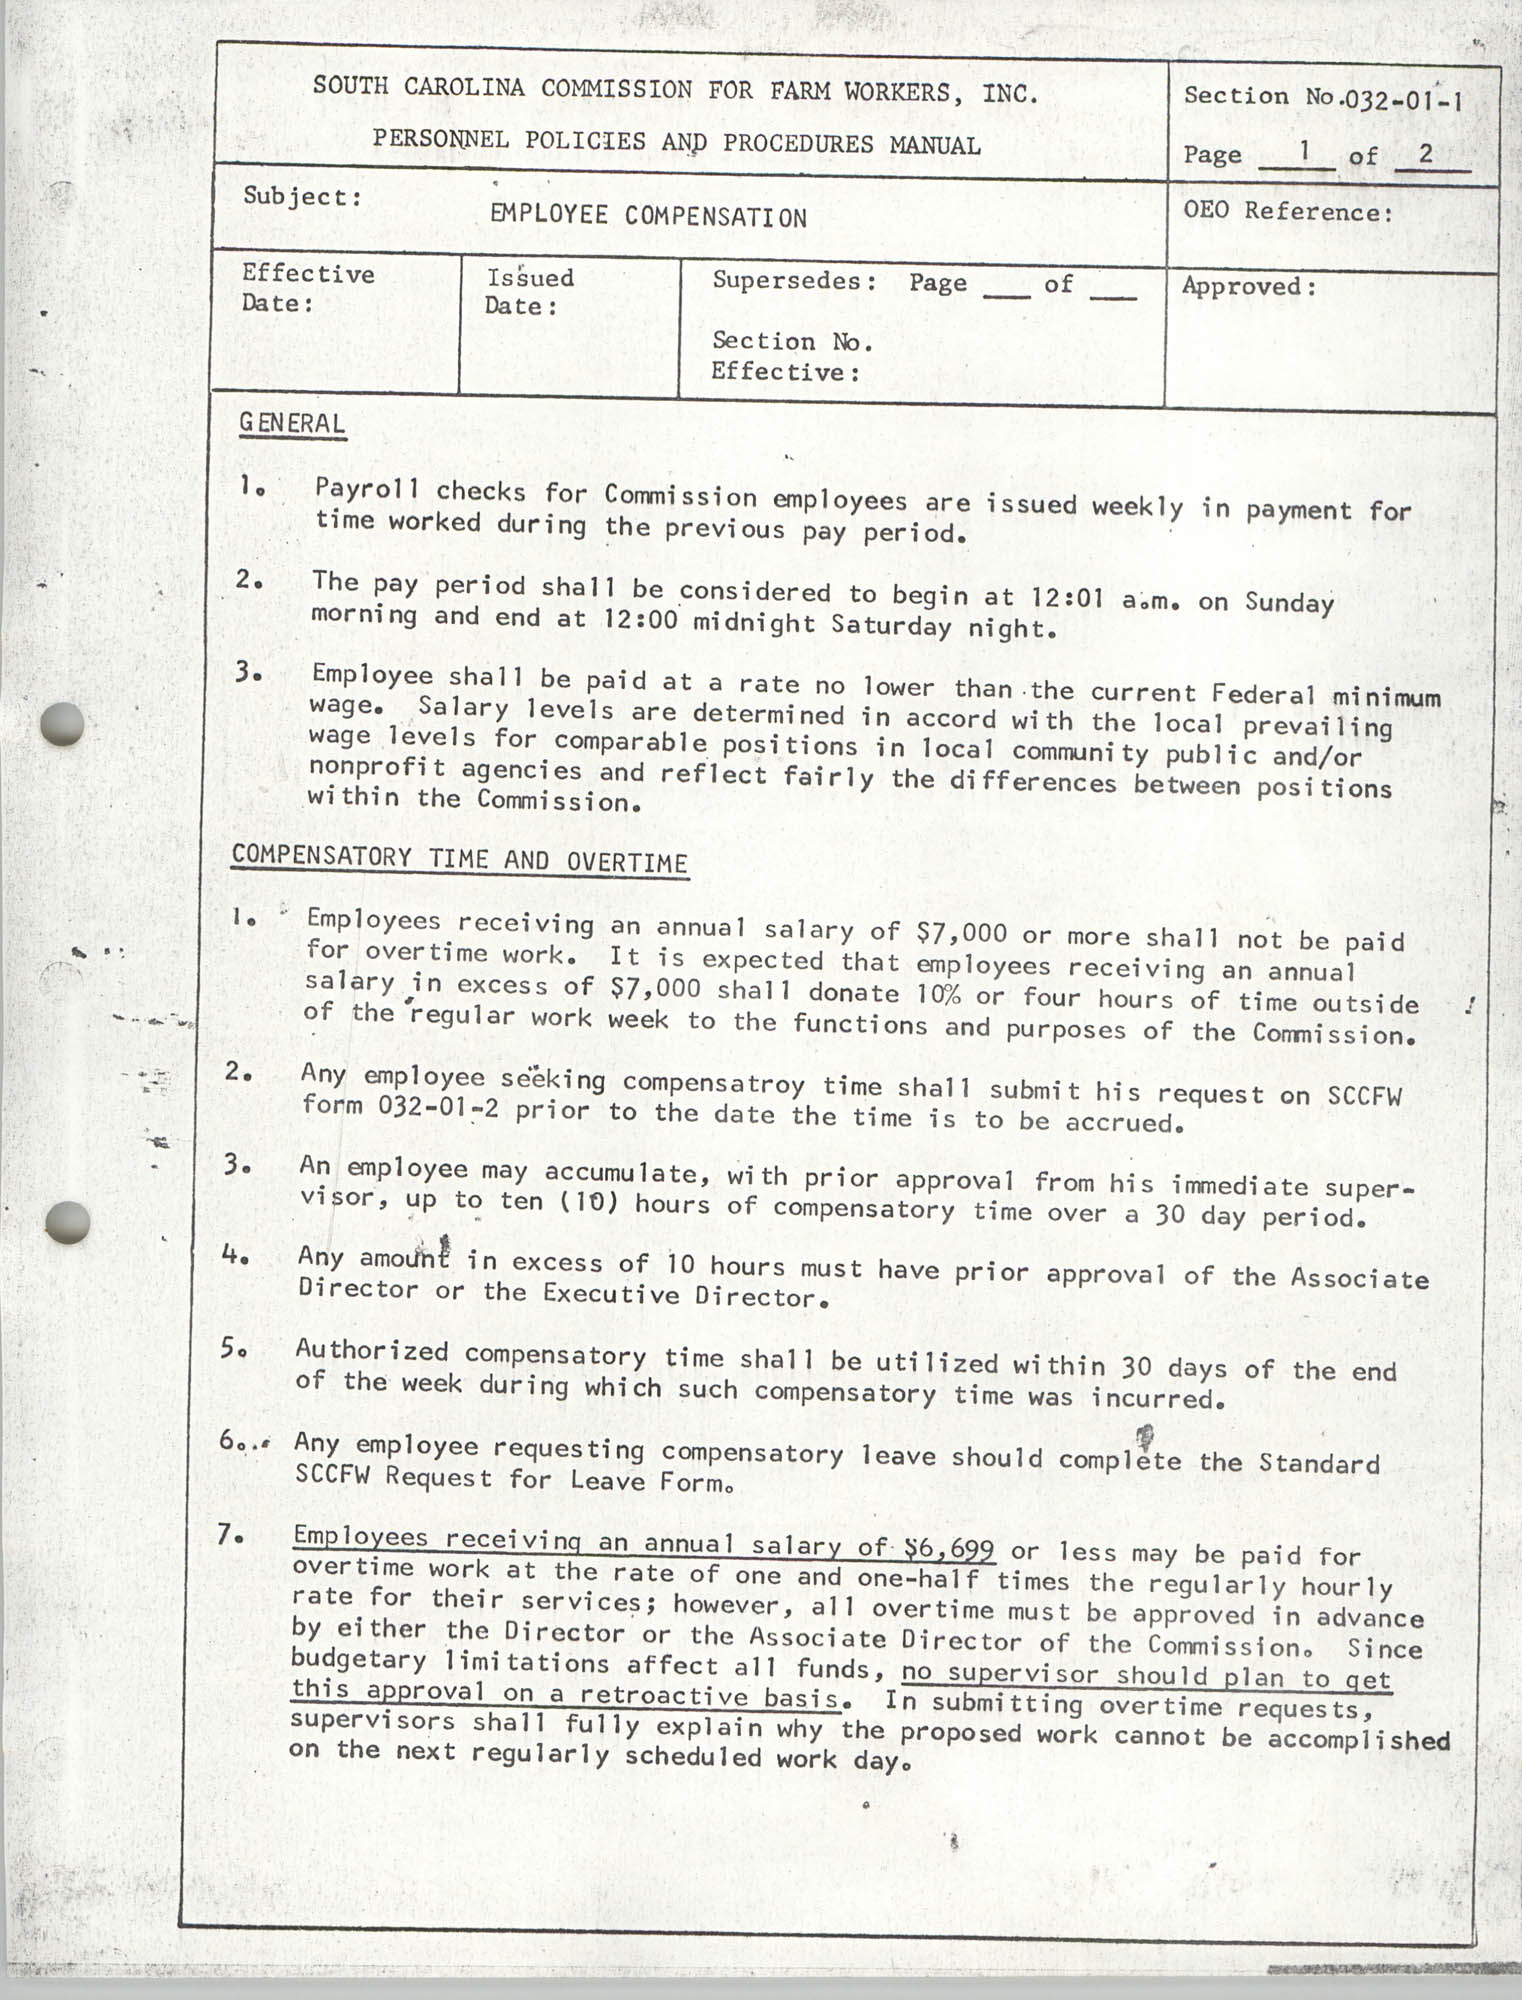 Personnel Policies and Procedures Manual, Section No. 032-01-1, Page 1